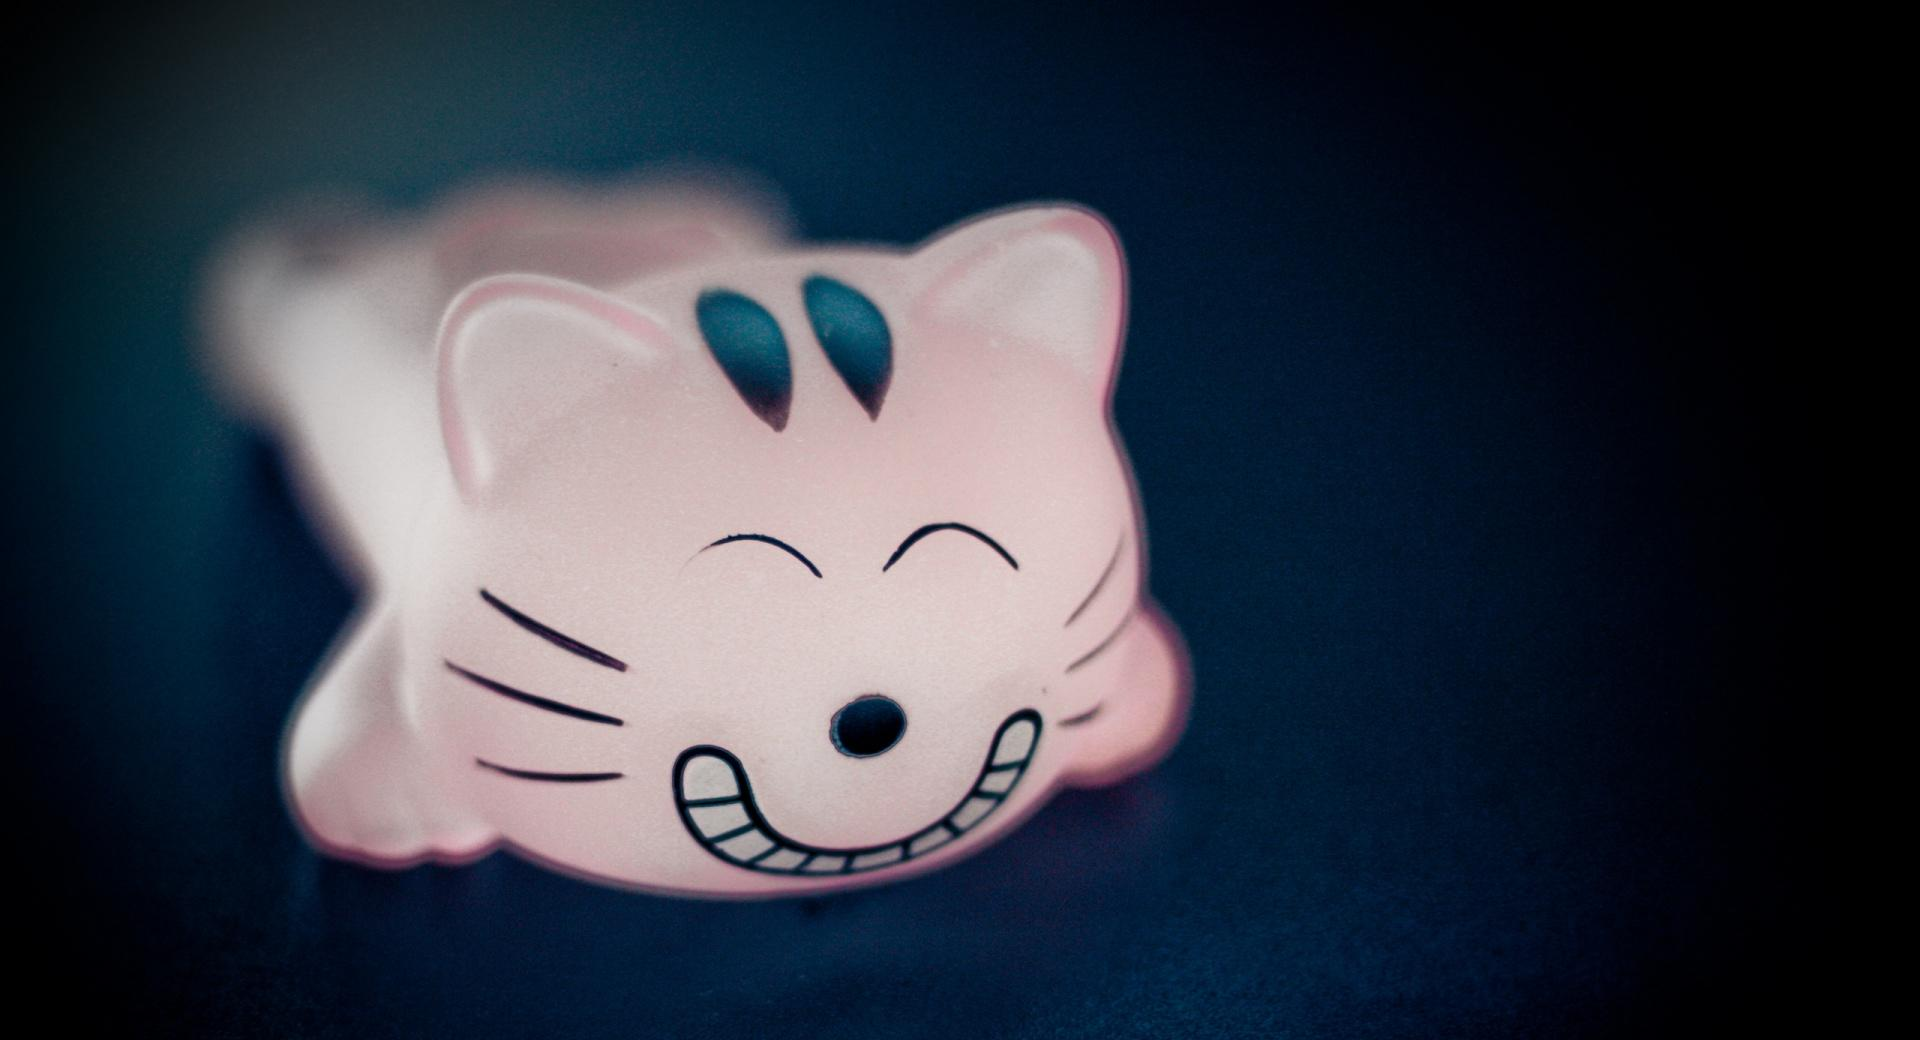 Cat Figurine wallpapers HD quality